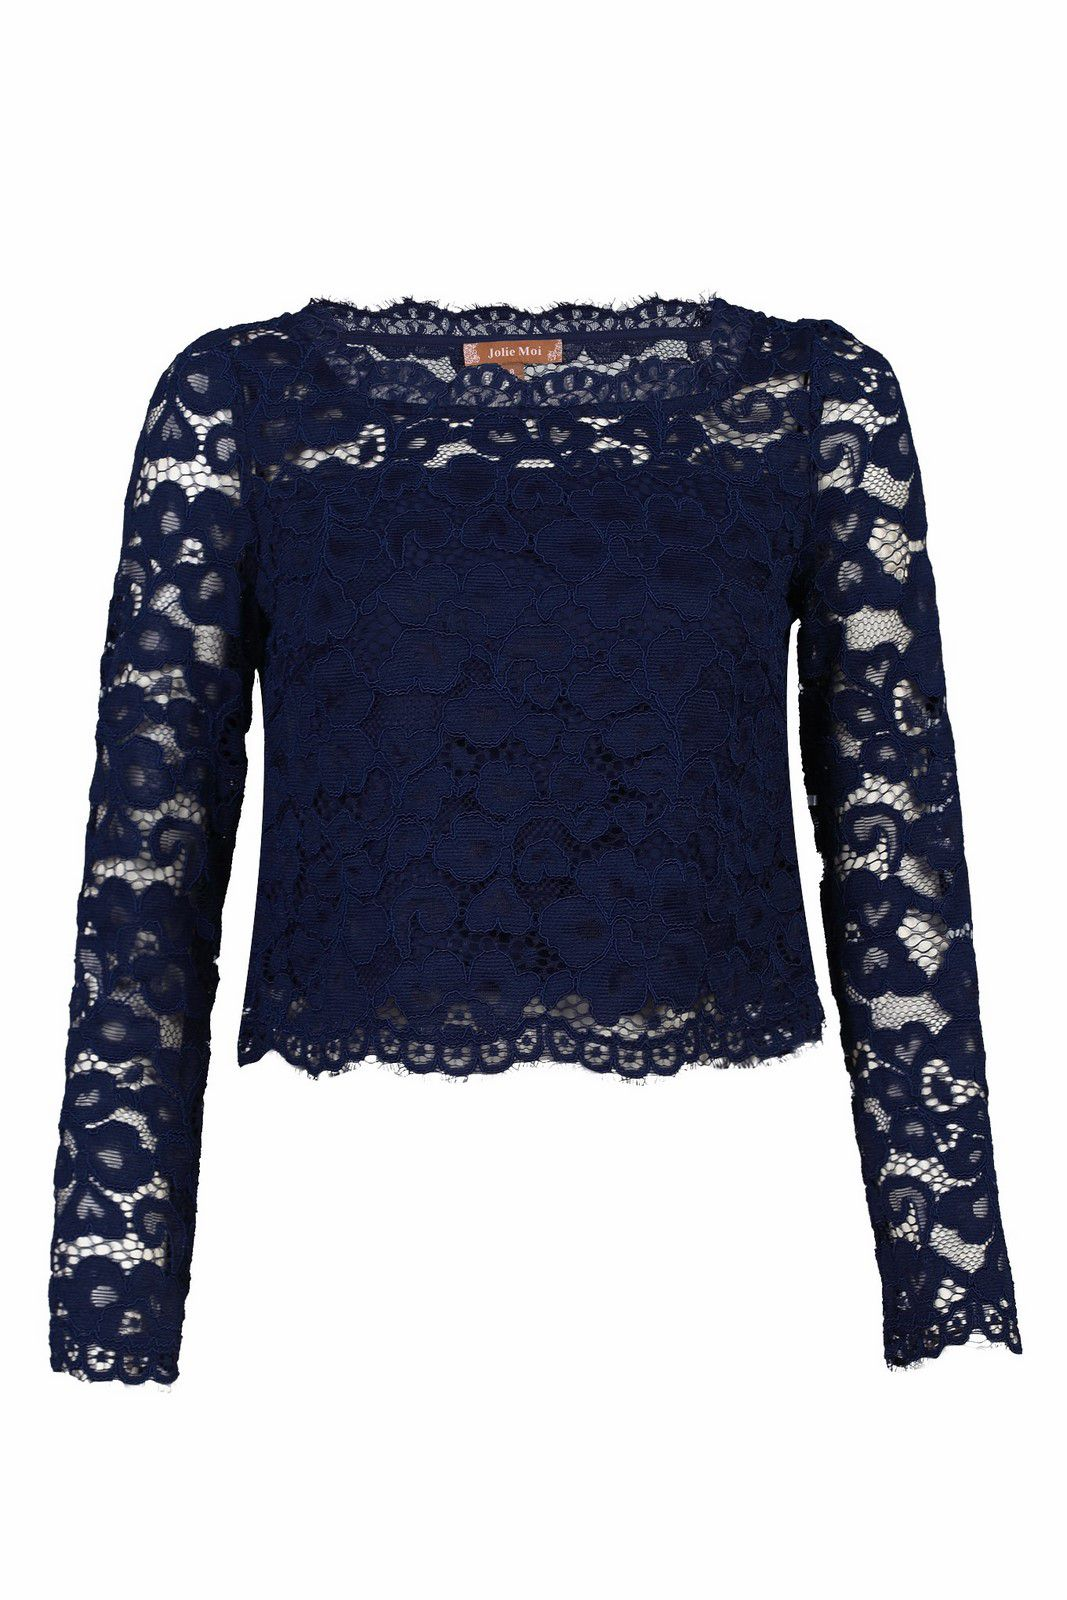 Jolie Moi Scalloped Flare Sleeve Lace Top, Blue